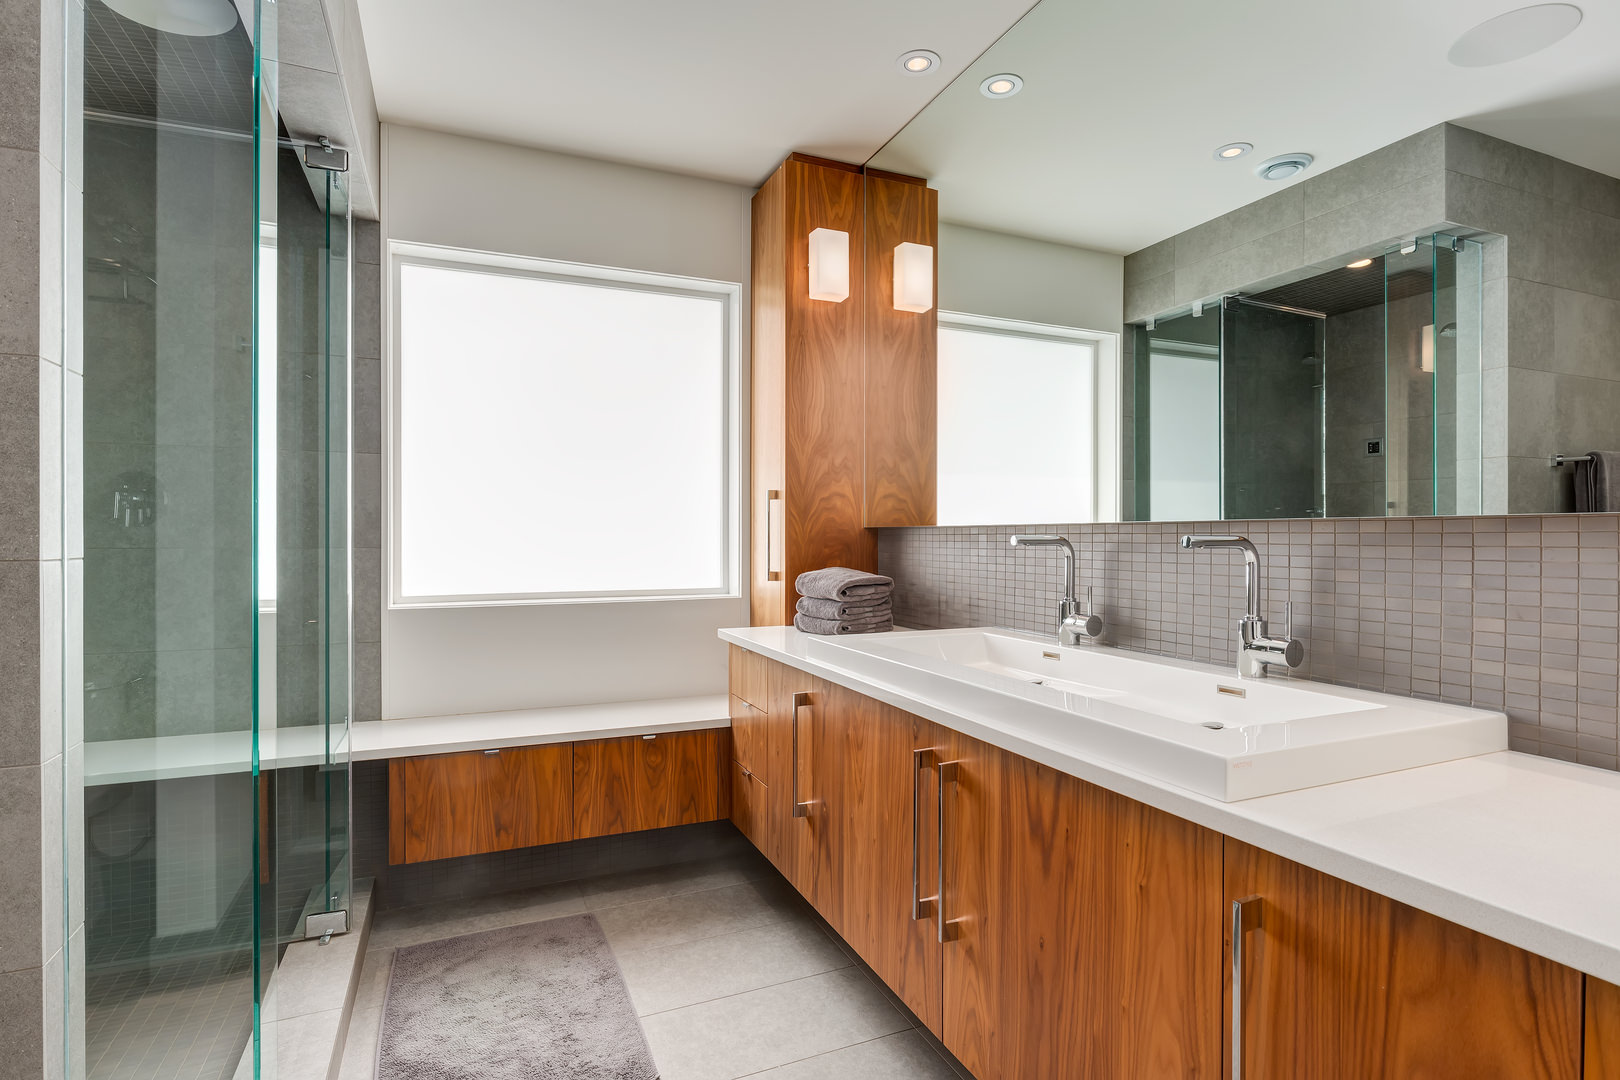 Dual sinks with plenty of counter space is backed with small brick-like grey tiles.